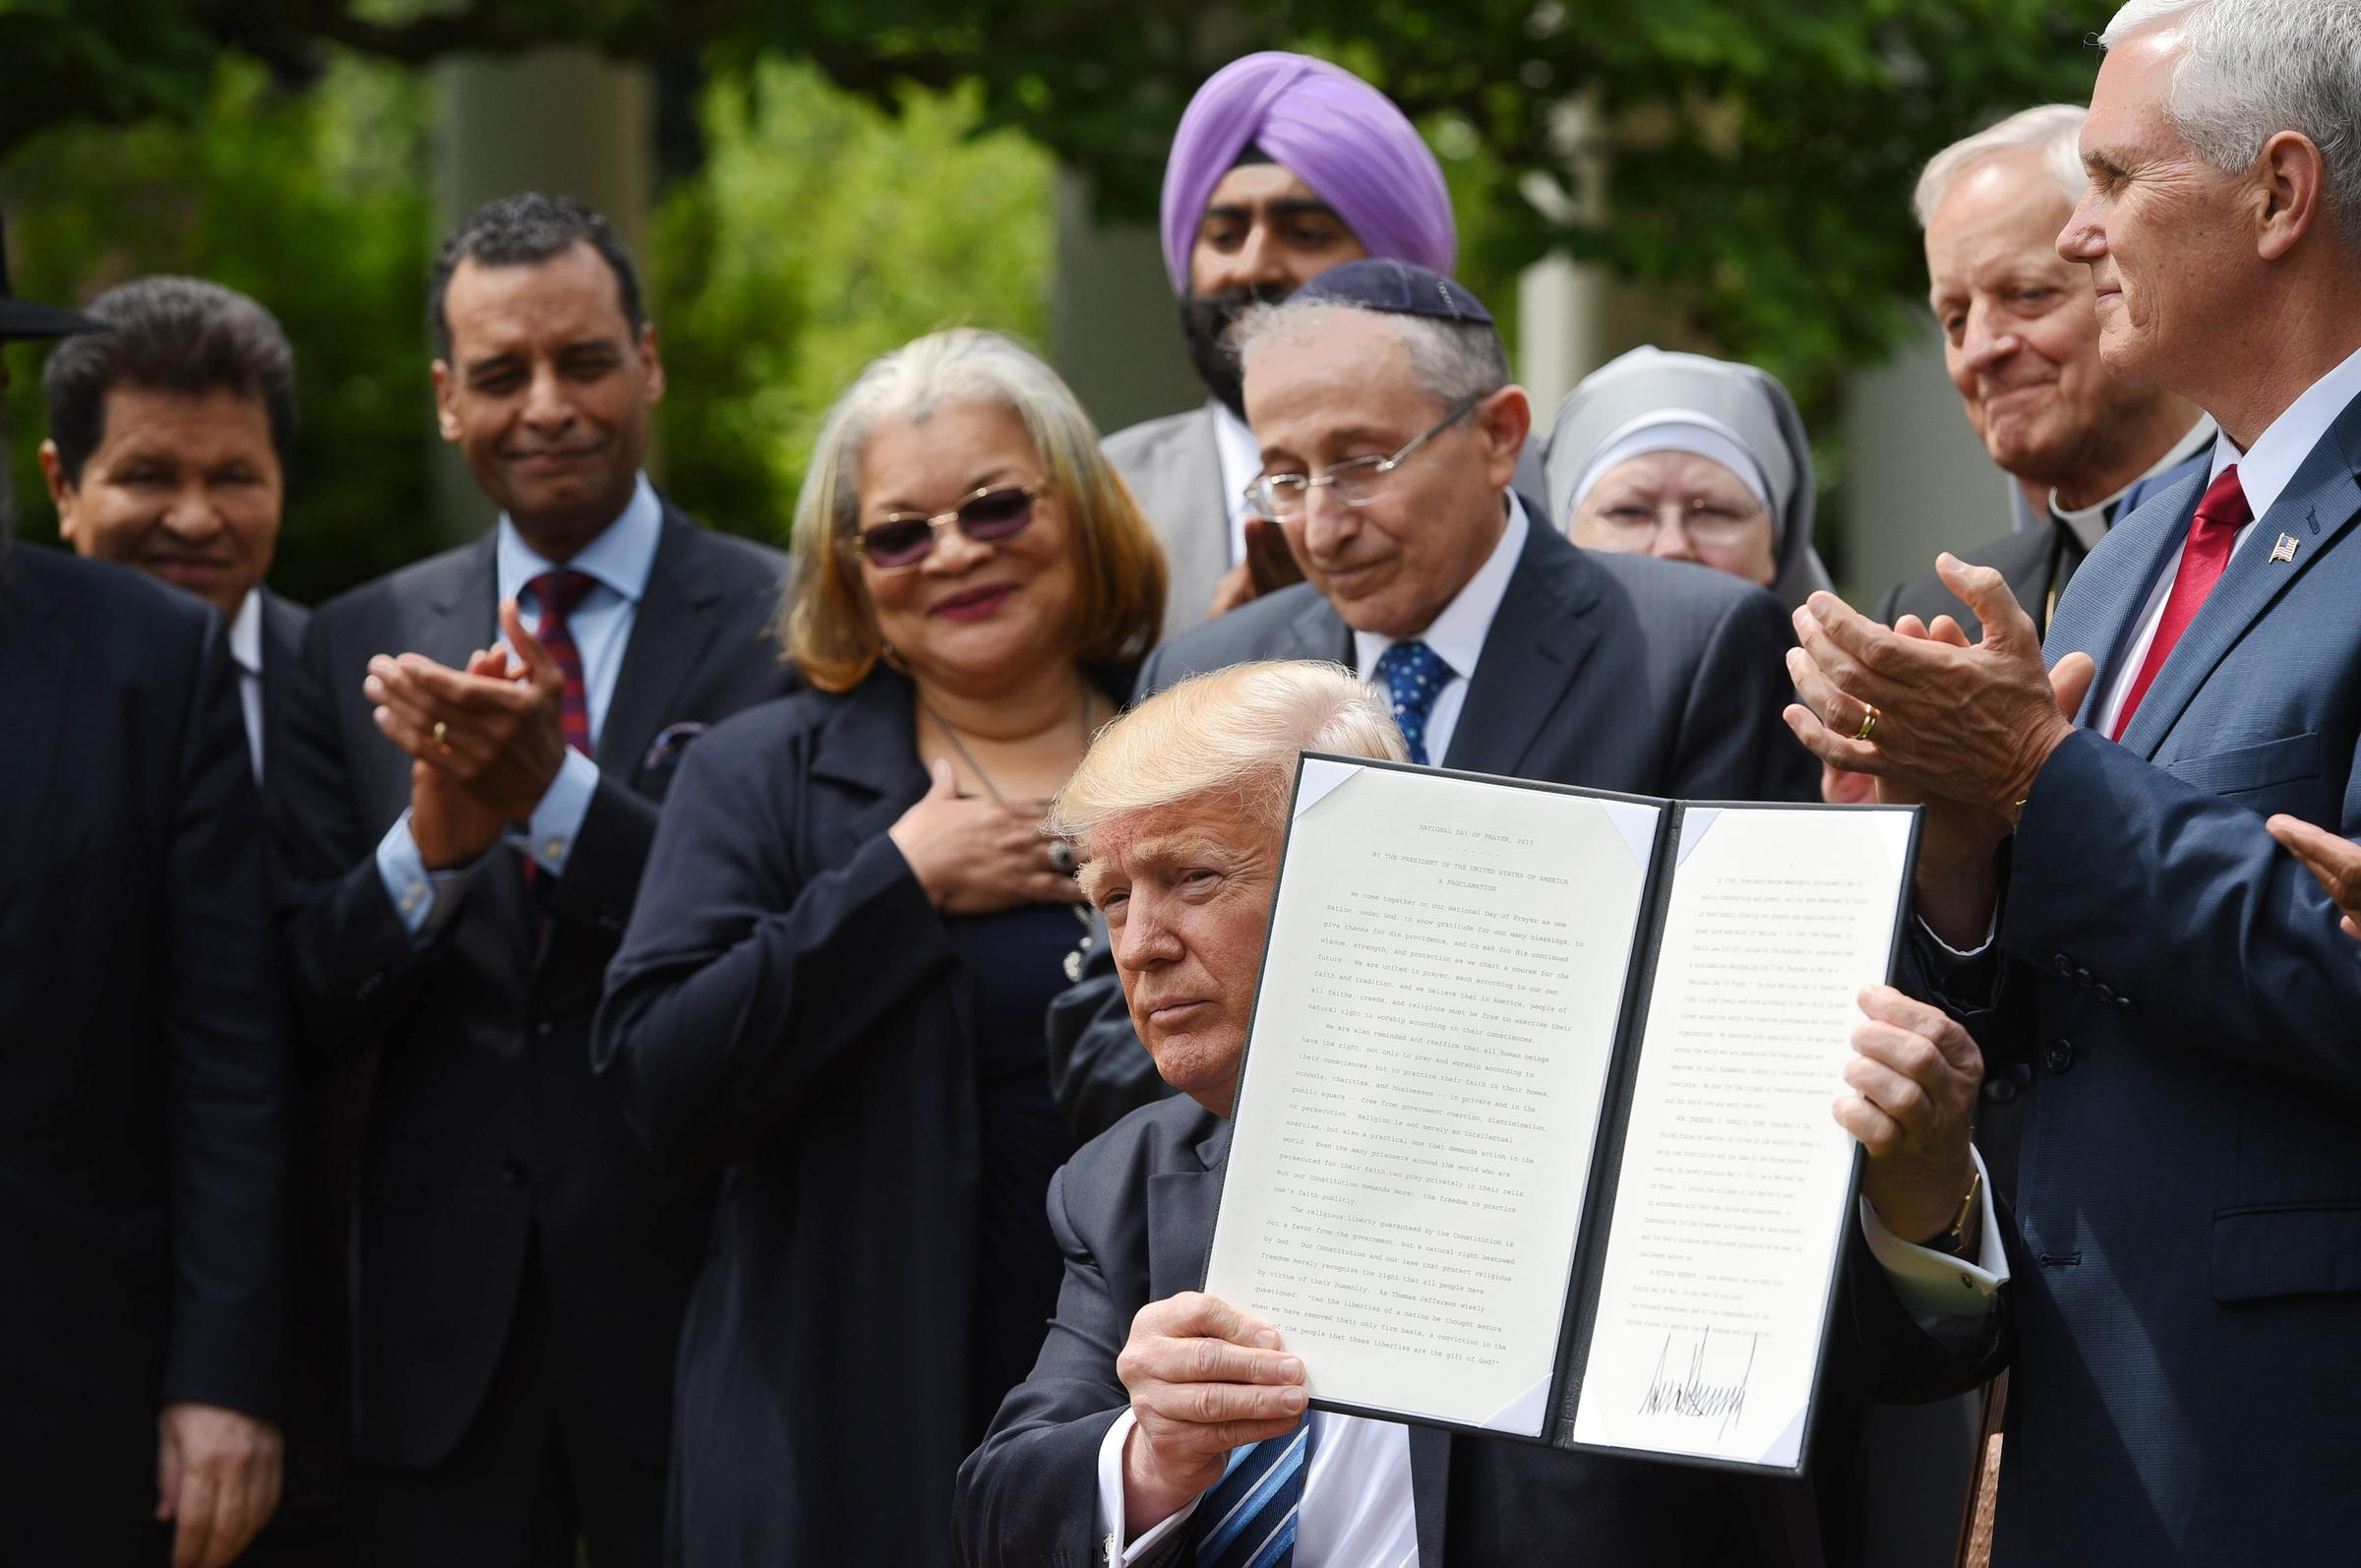 Trump signs executive order to promote religious liberty